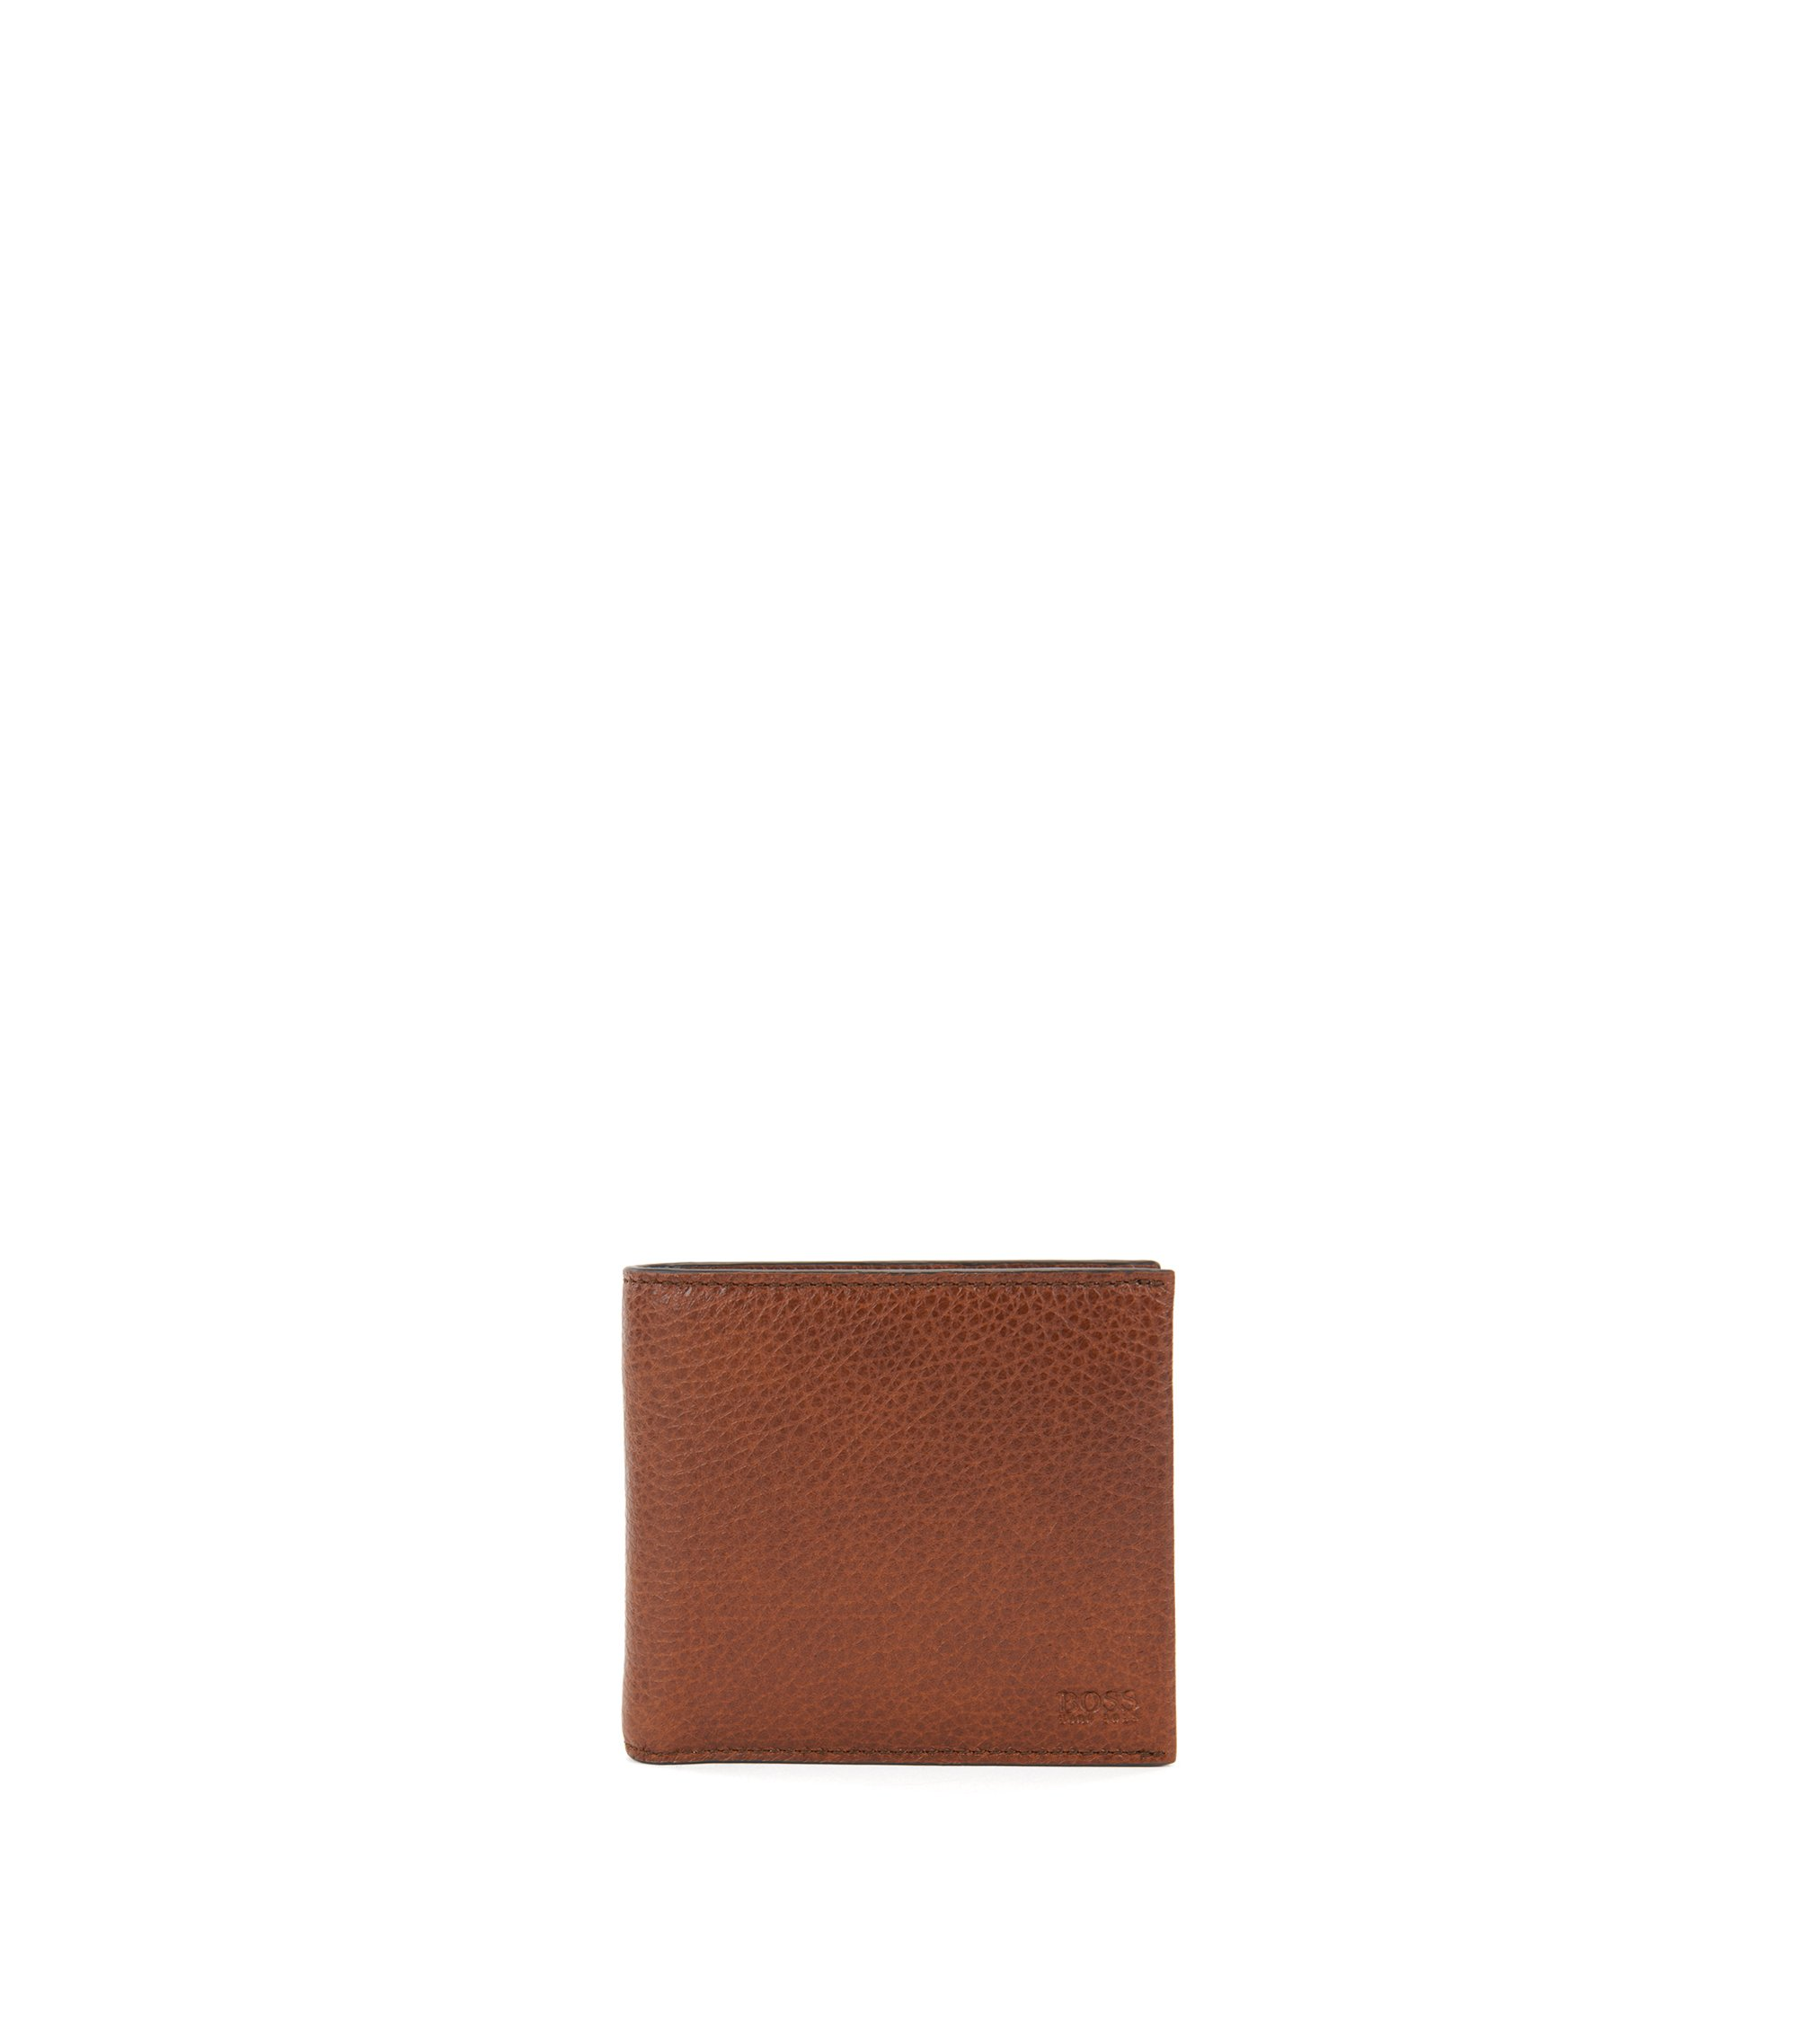 Grained Italian-leather billfold wallet with coin pocket, Brown